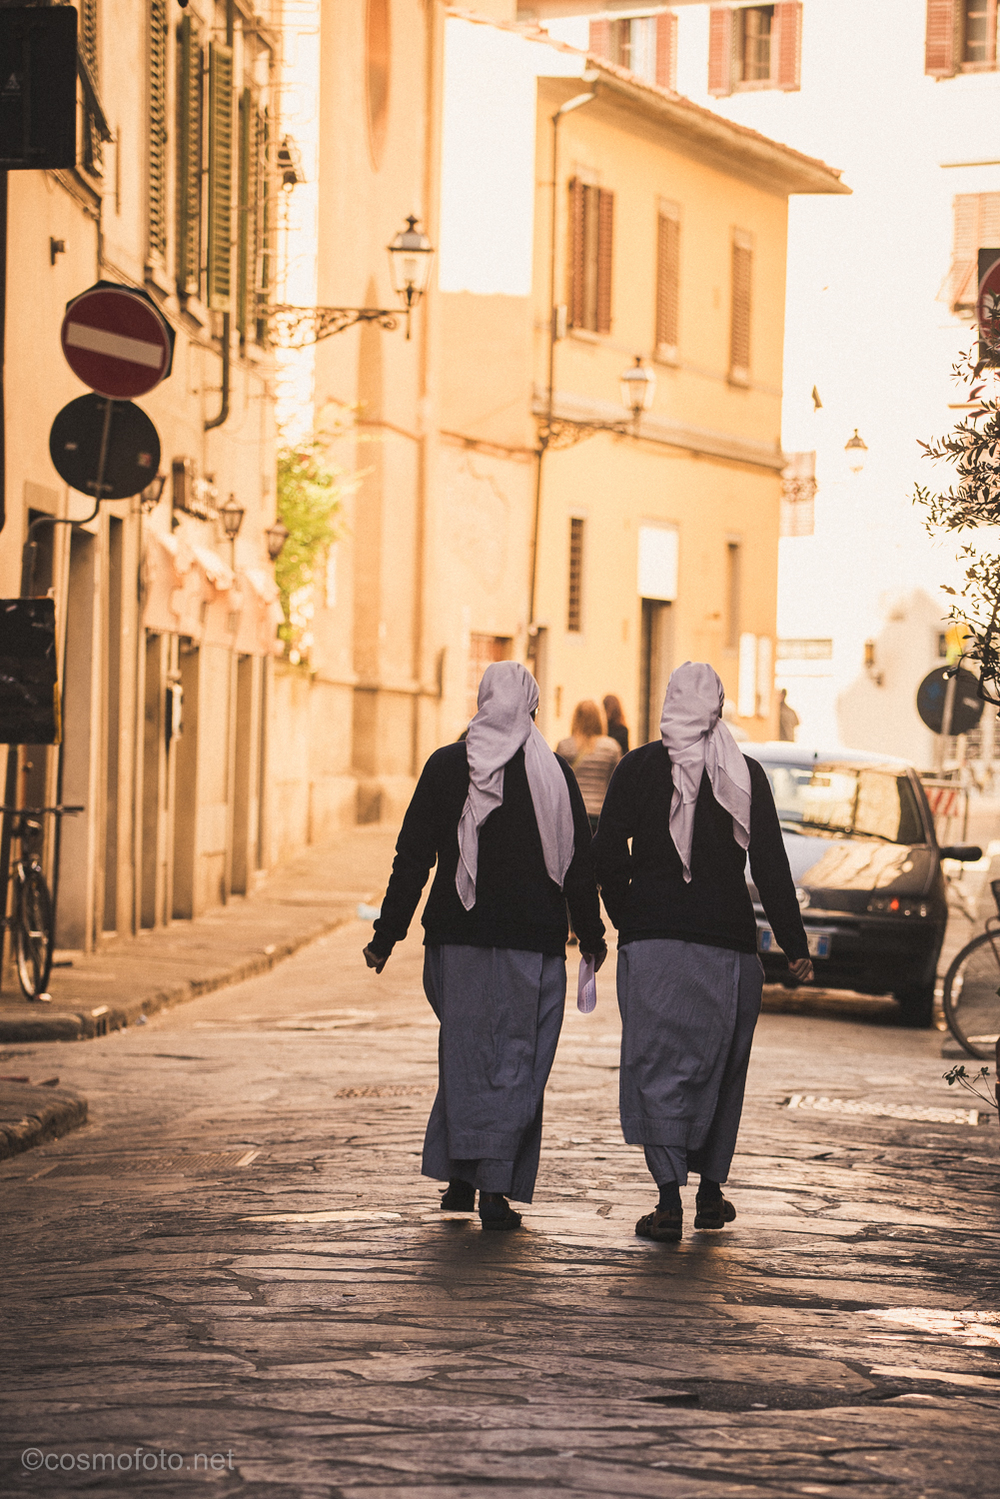 Another photo that I really like, two nuns walking in Florence.